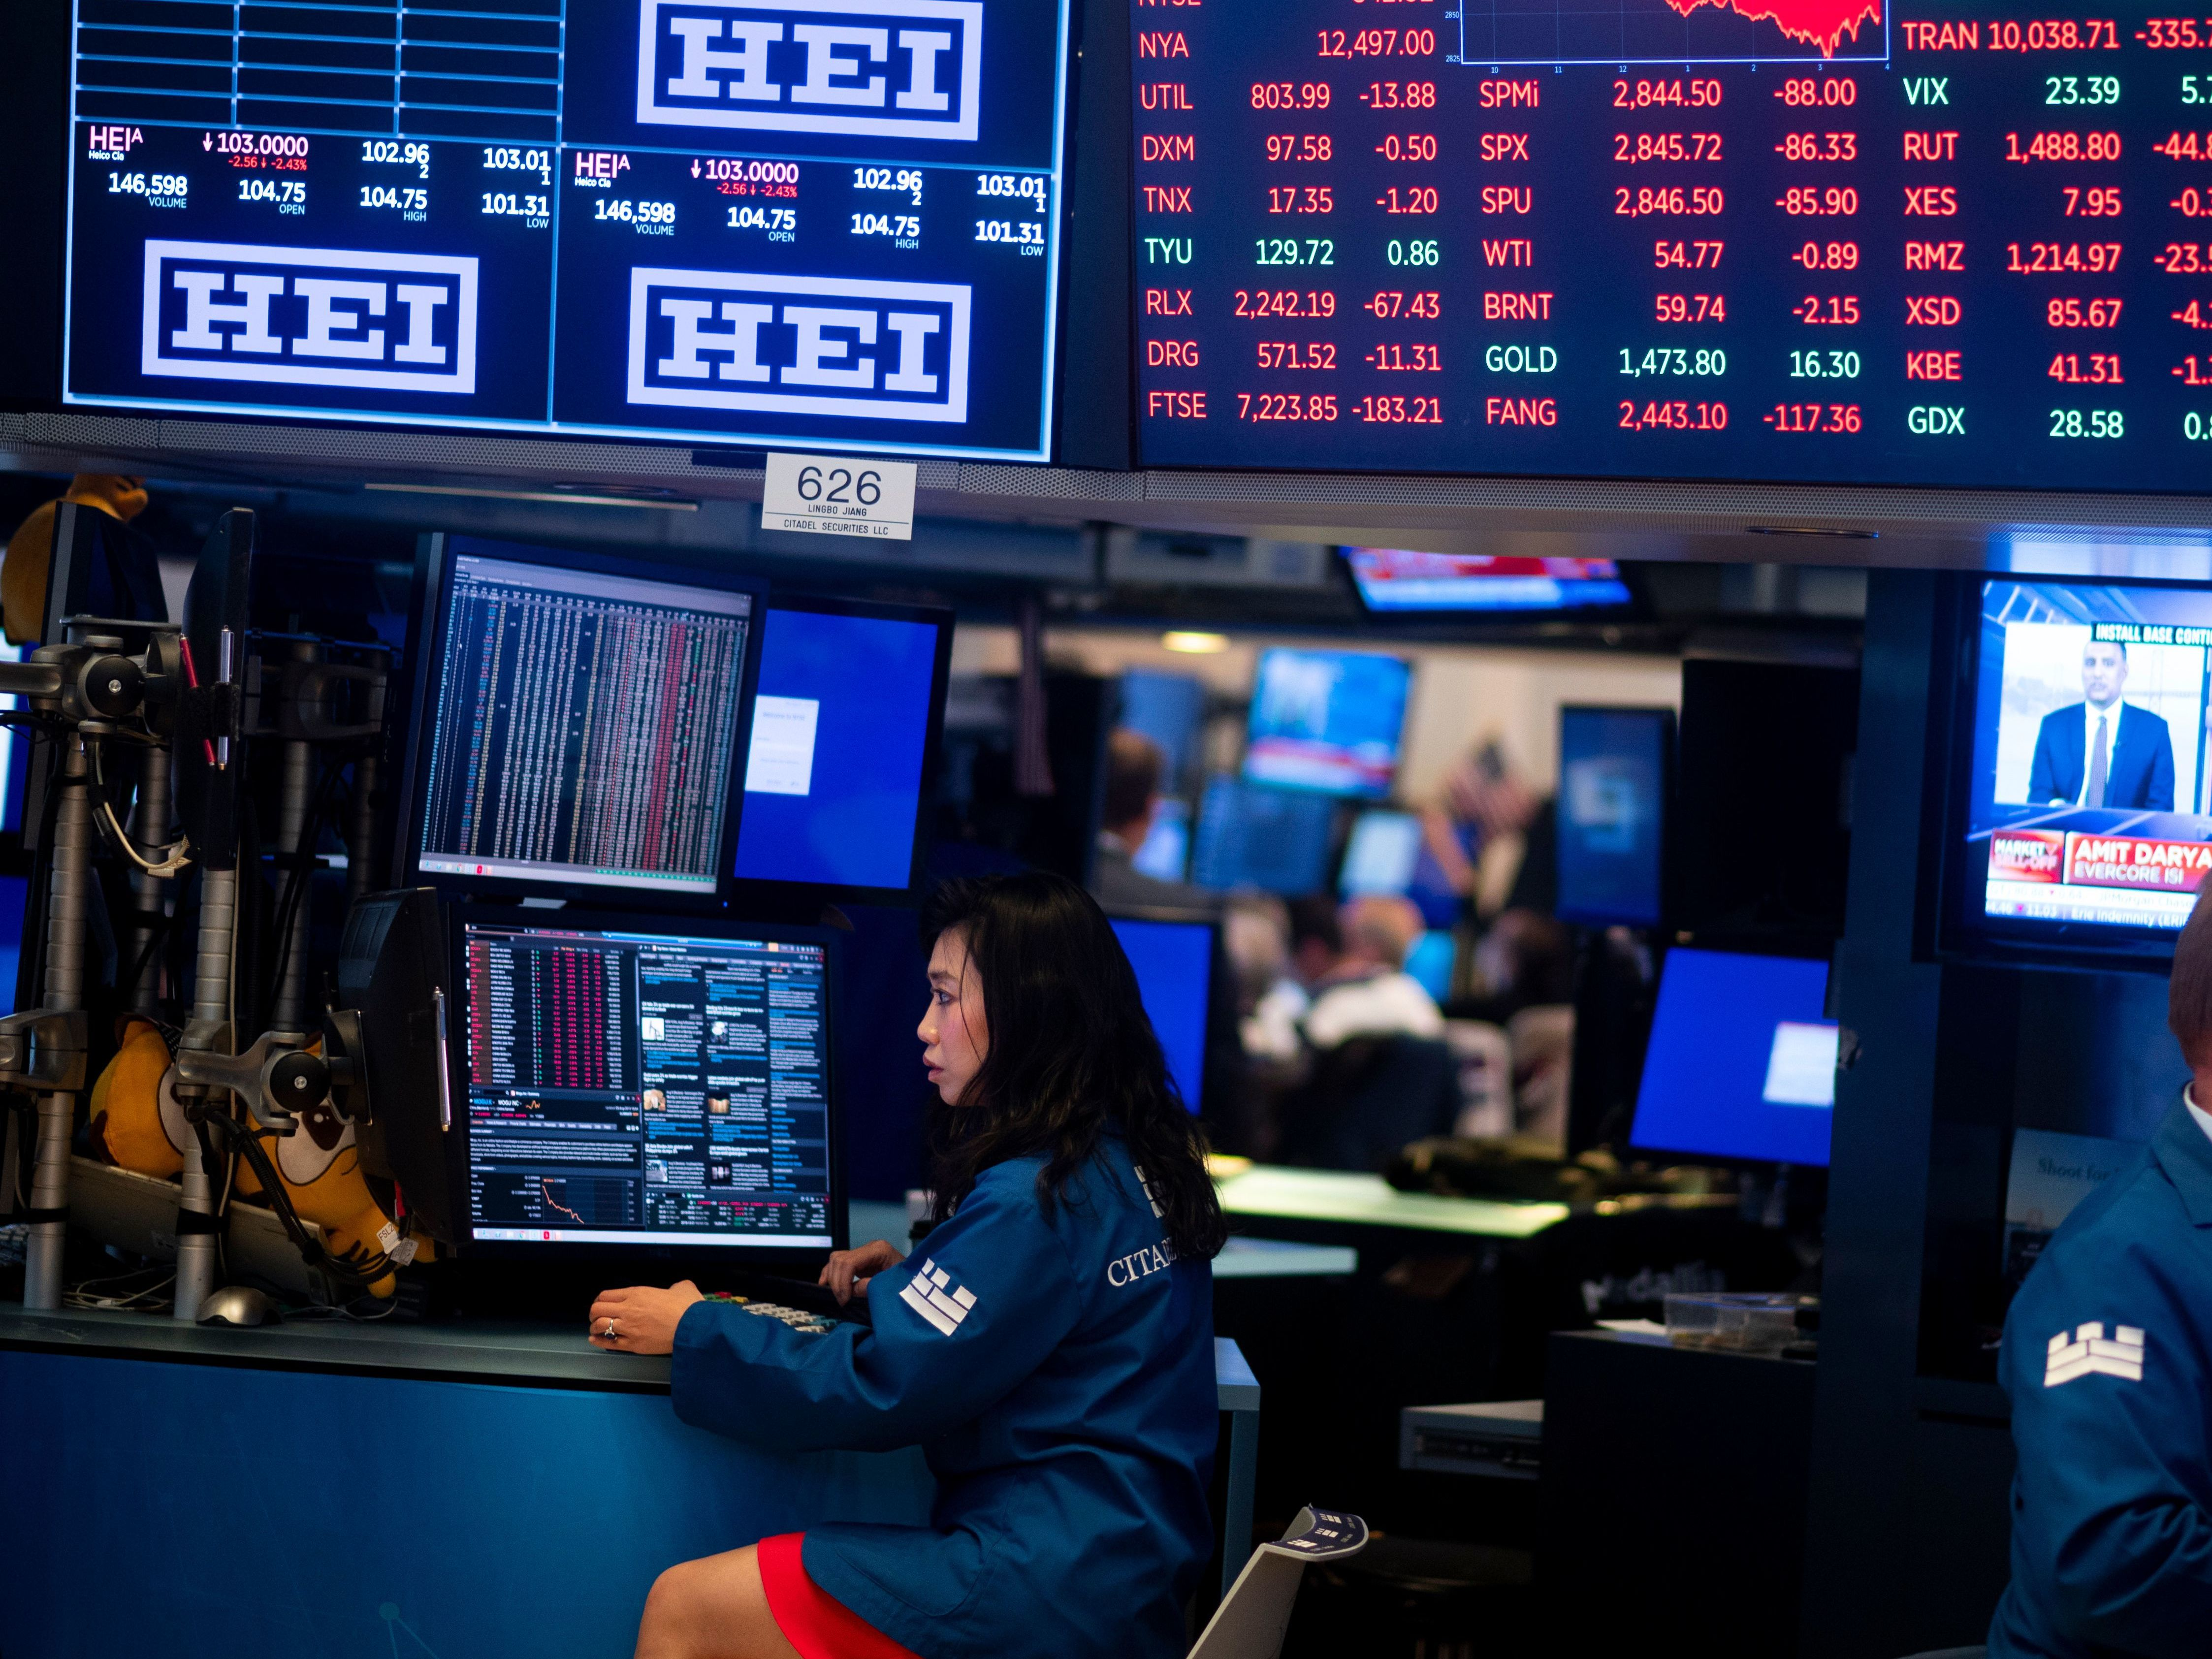 Investors May Prefer Companies With More Women In The Workforce